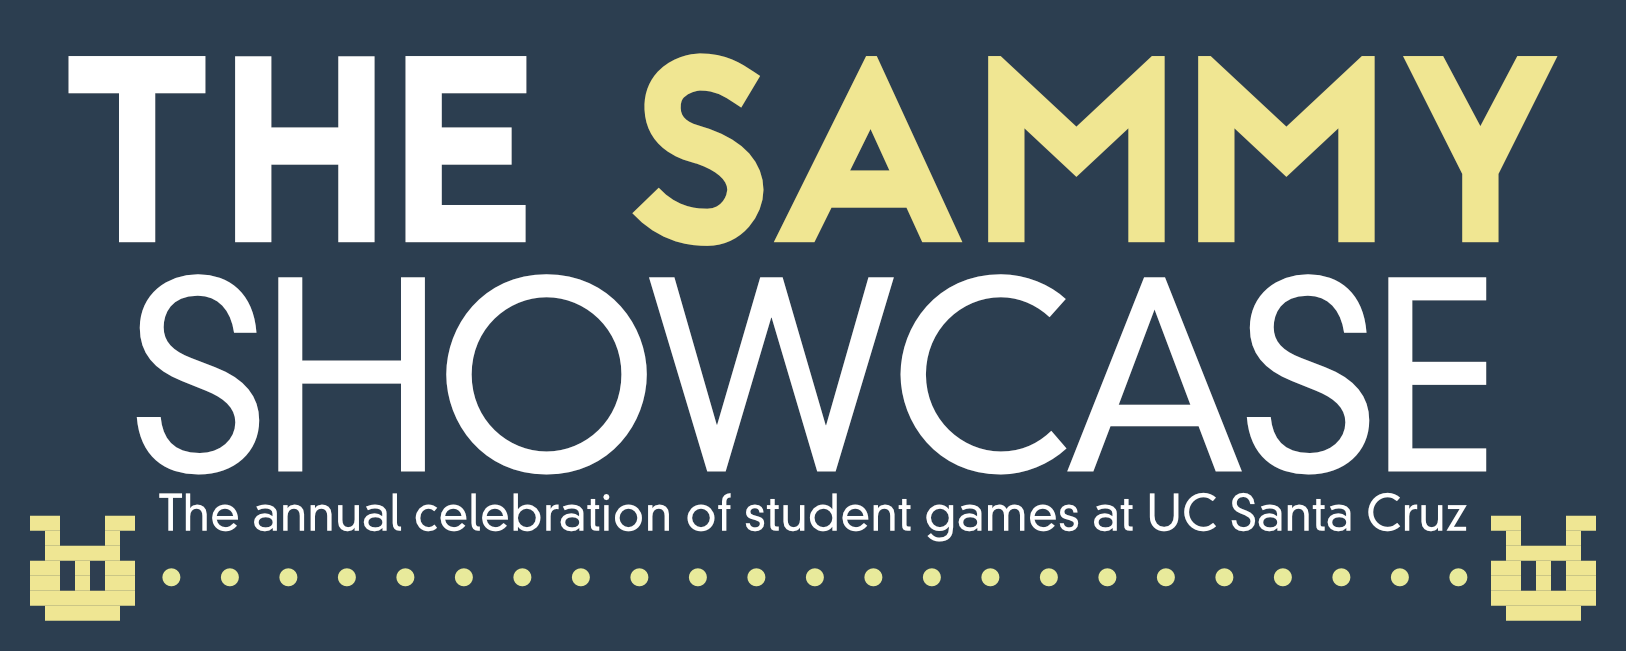 "Banner image with the text ""The Sammy Showcase: The annual celebration of all things games at UC Santa Cruz"""